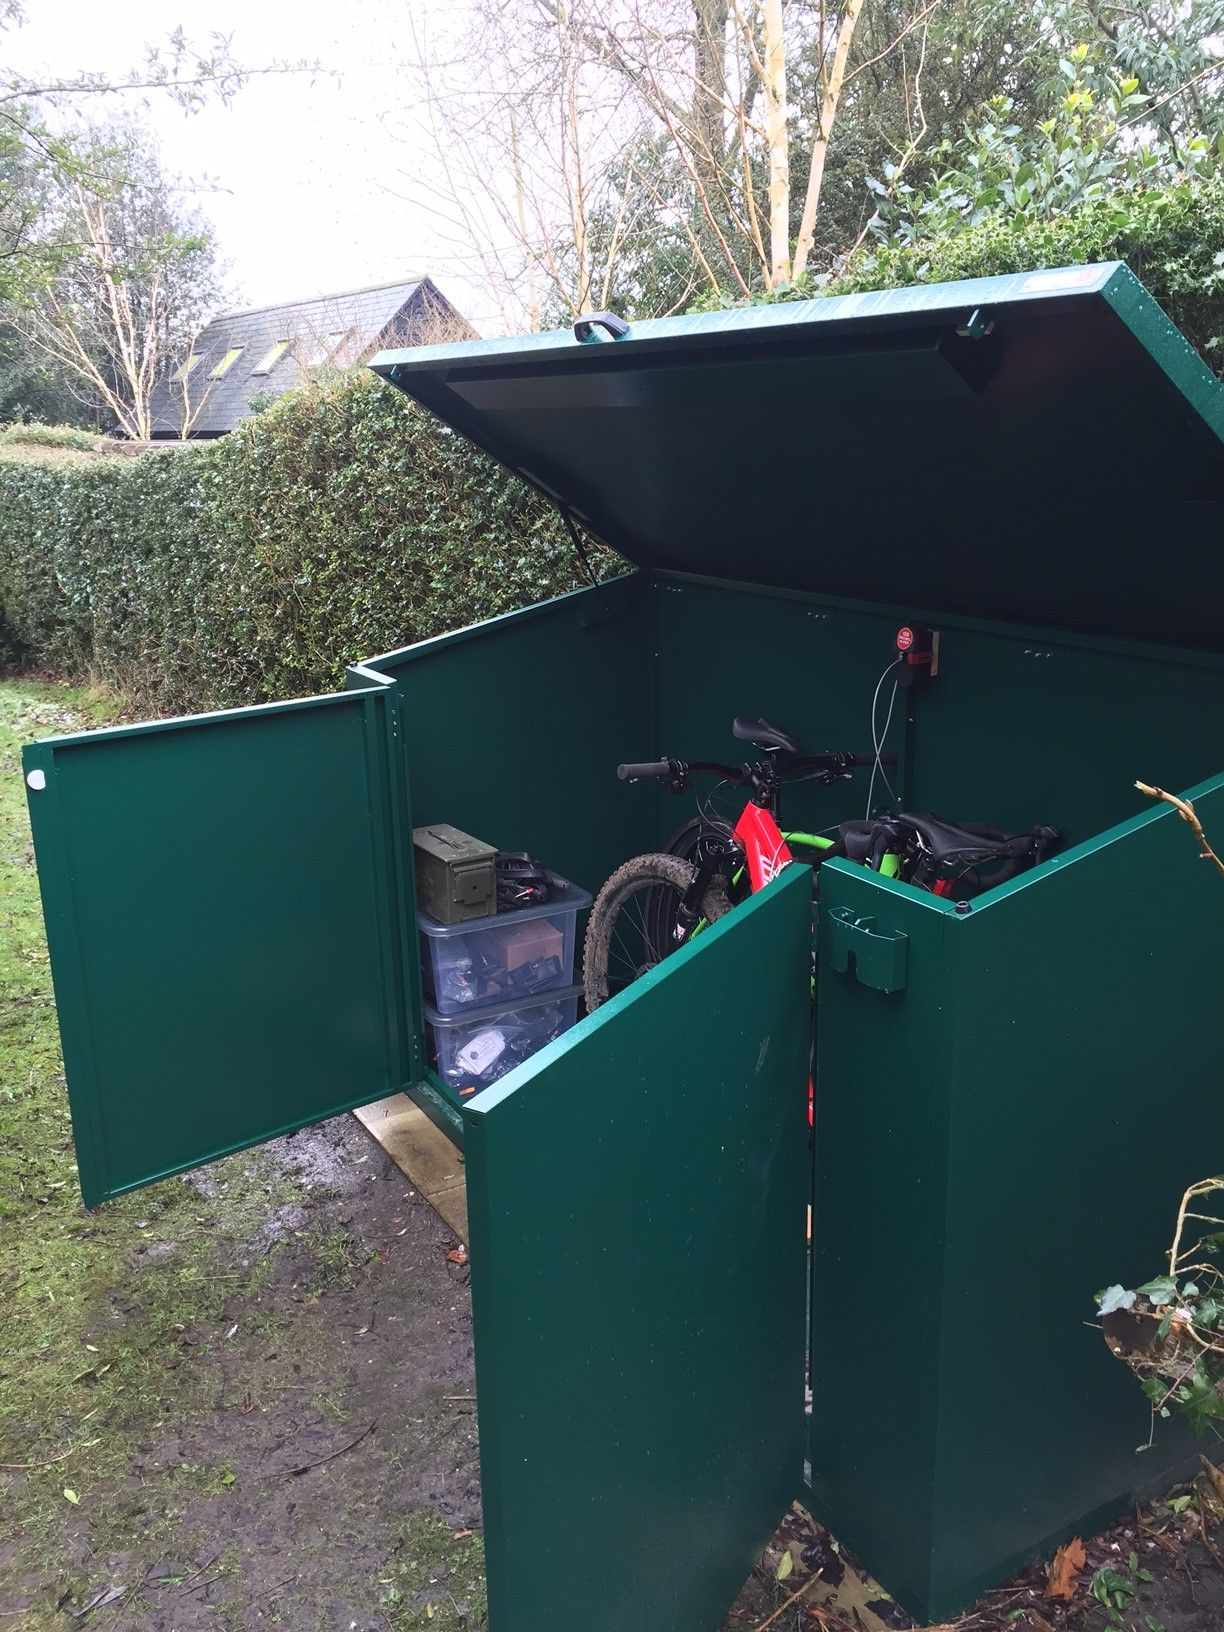 43f0fc7539c Secure Bike Storage from Asgard - Heavy Duty metal sheds made in the UK.  Ideal for storing bikes and gardening equipment. #gardenshed #bikeshed  #garden ...